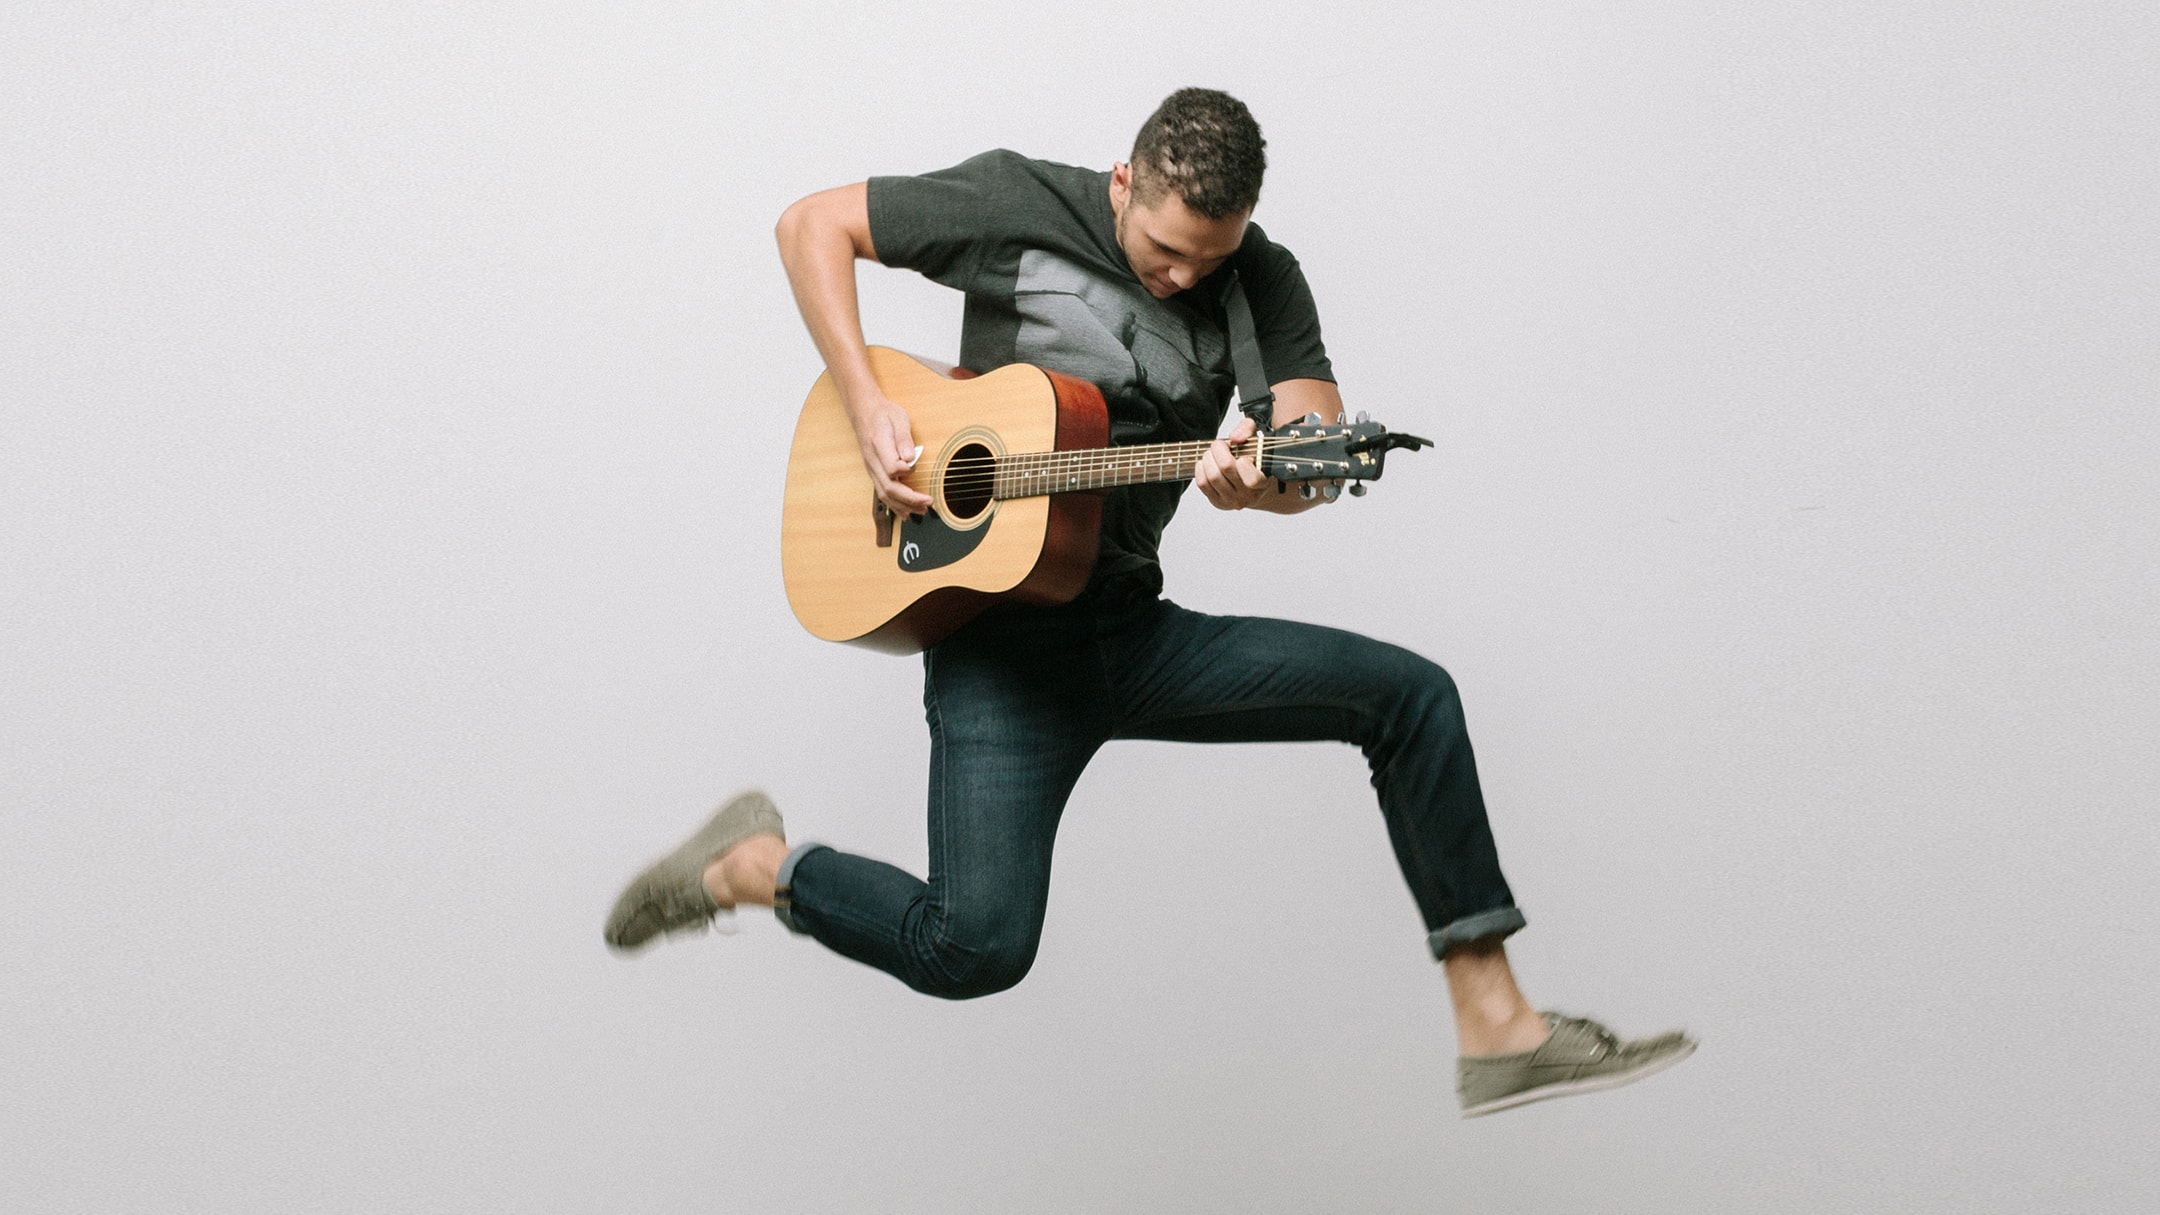 Man jumping into the air while playing guitar.